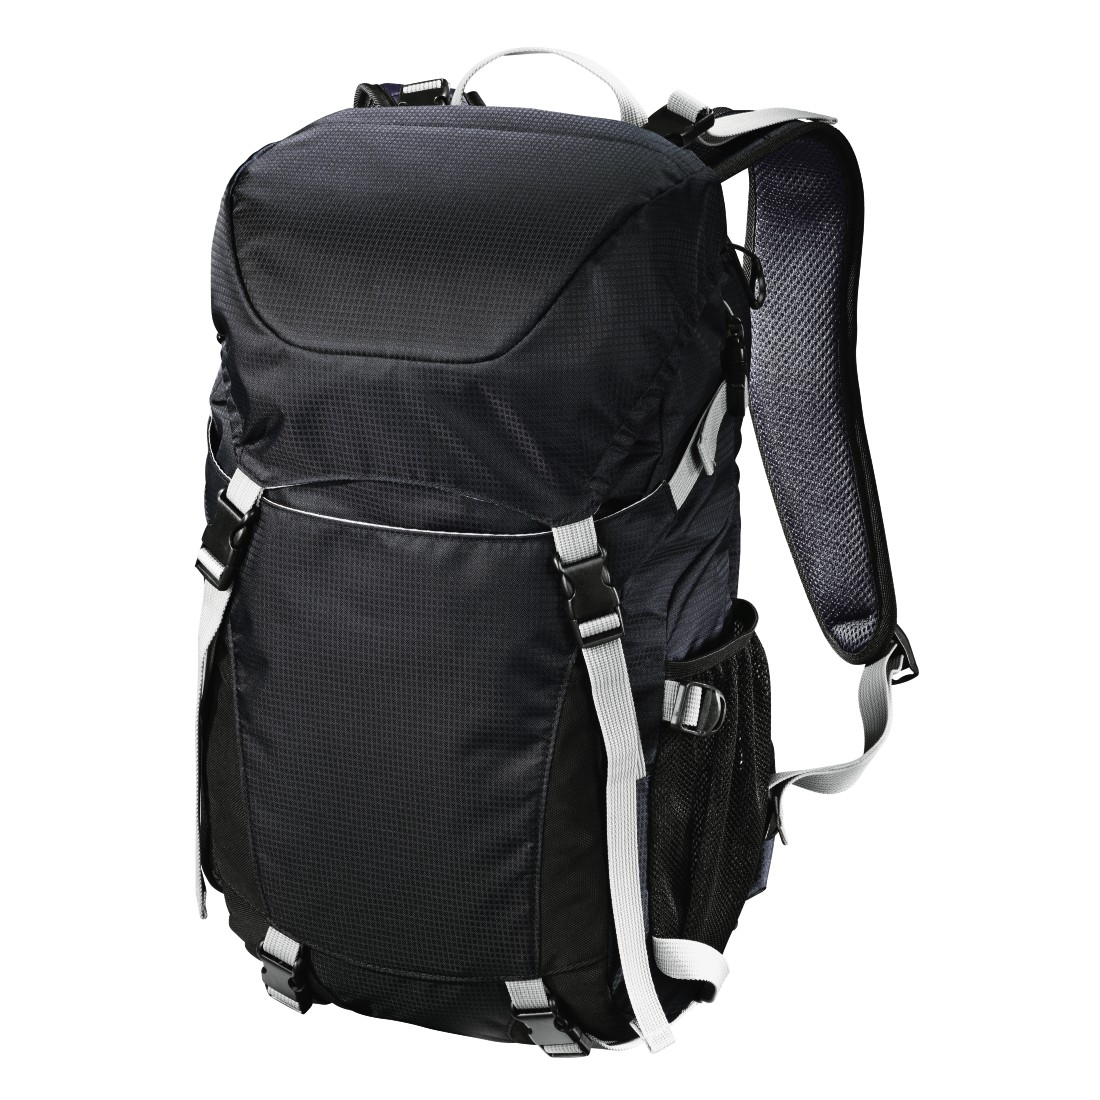 abx High-Res Image - Hama, Trekkingtour Camera Backpack, 140, black